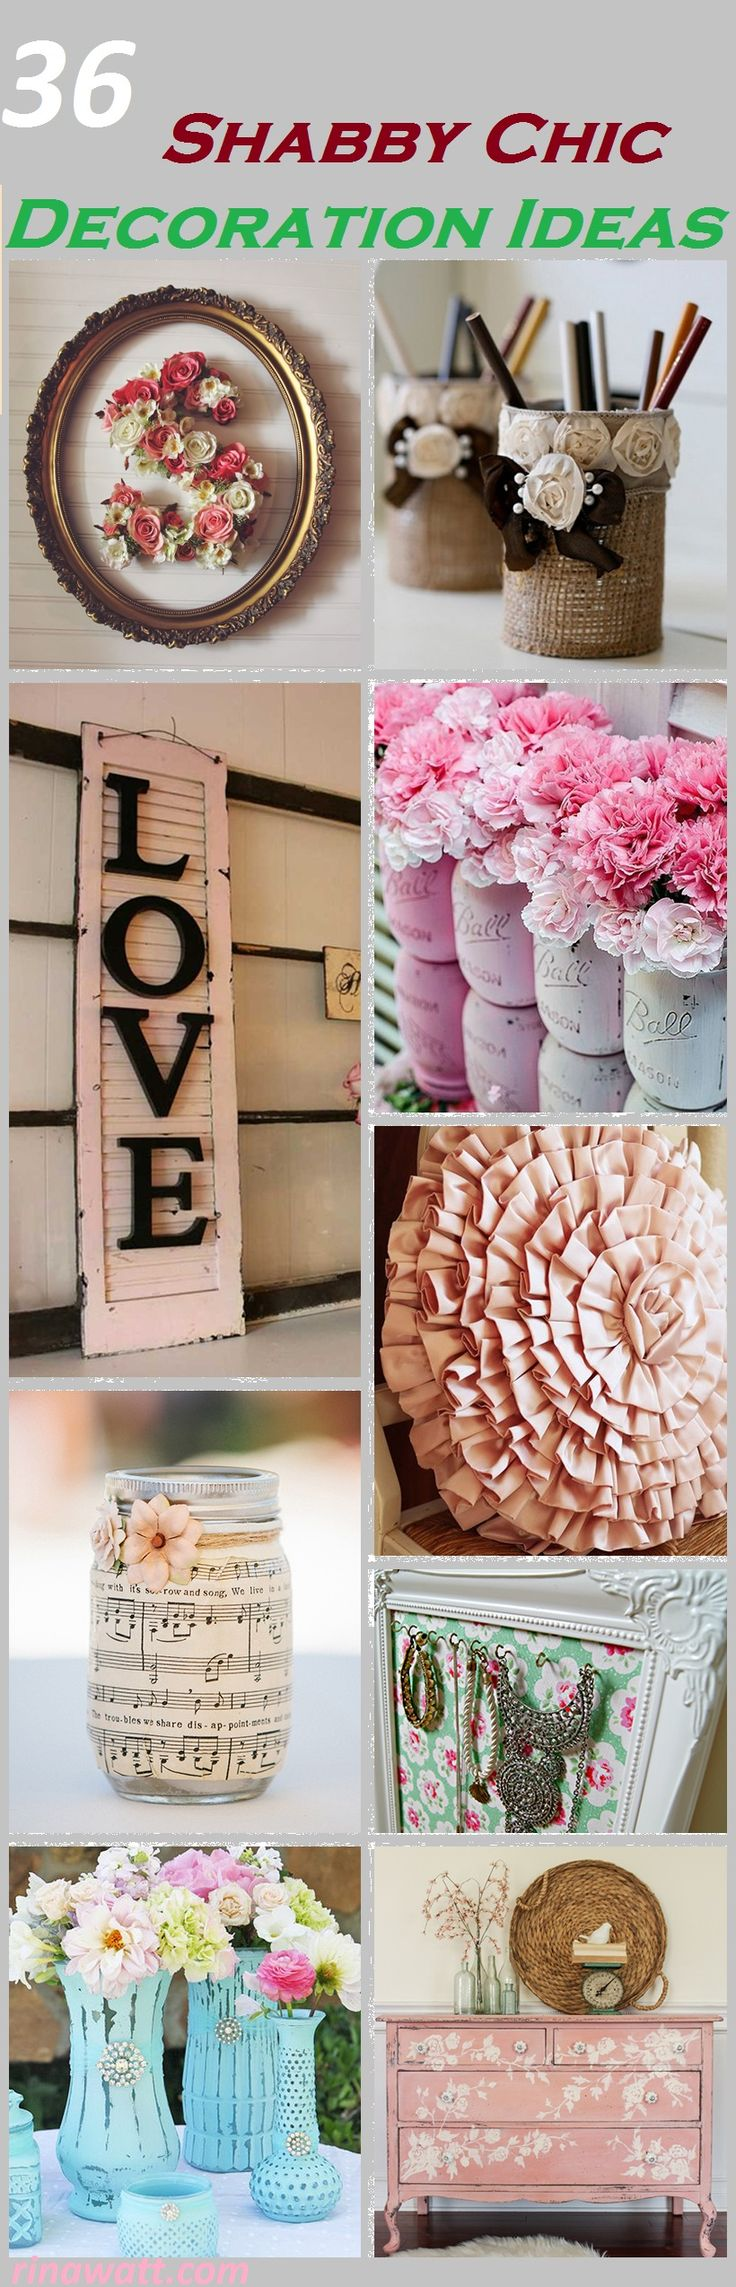 36 Amazing DIY Shabby Chic Decoration Ideas You Won't Want to Live Without